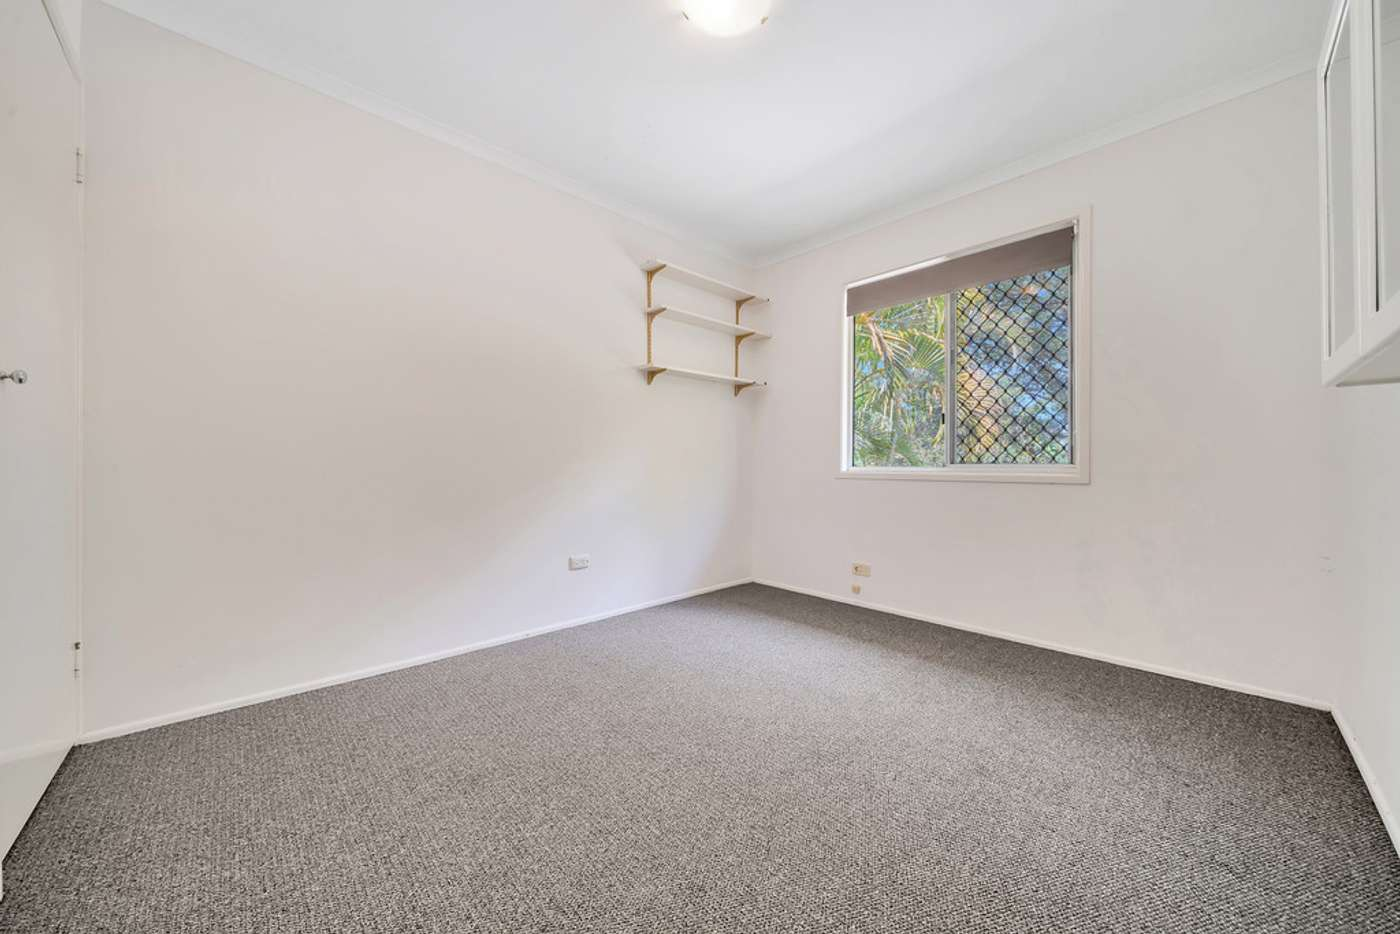 Sixth view of Homely house listing, 127 Waratah Drive, Crestmead QLD 4132